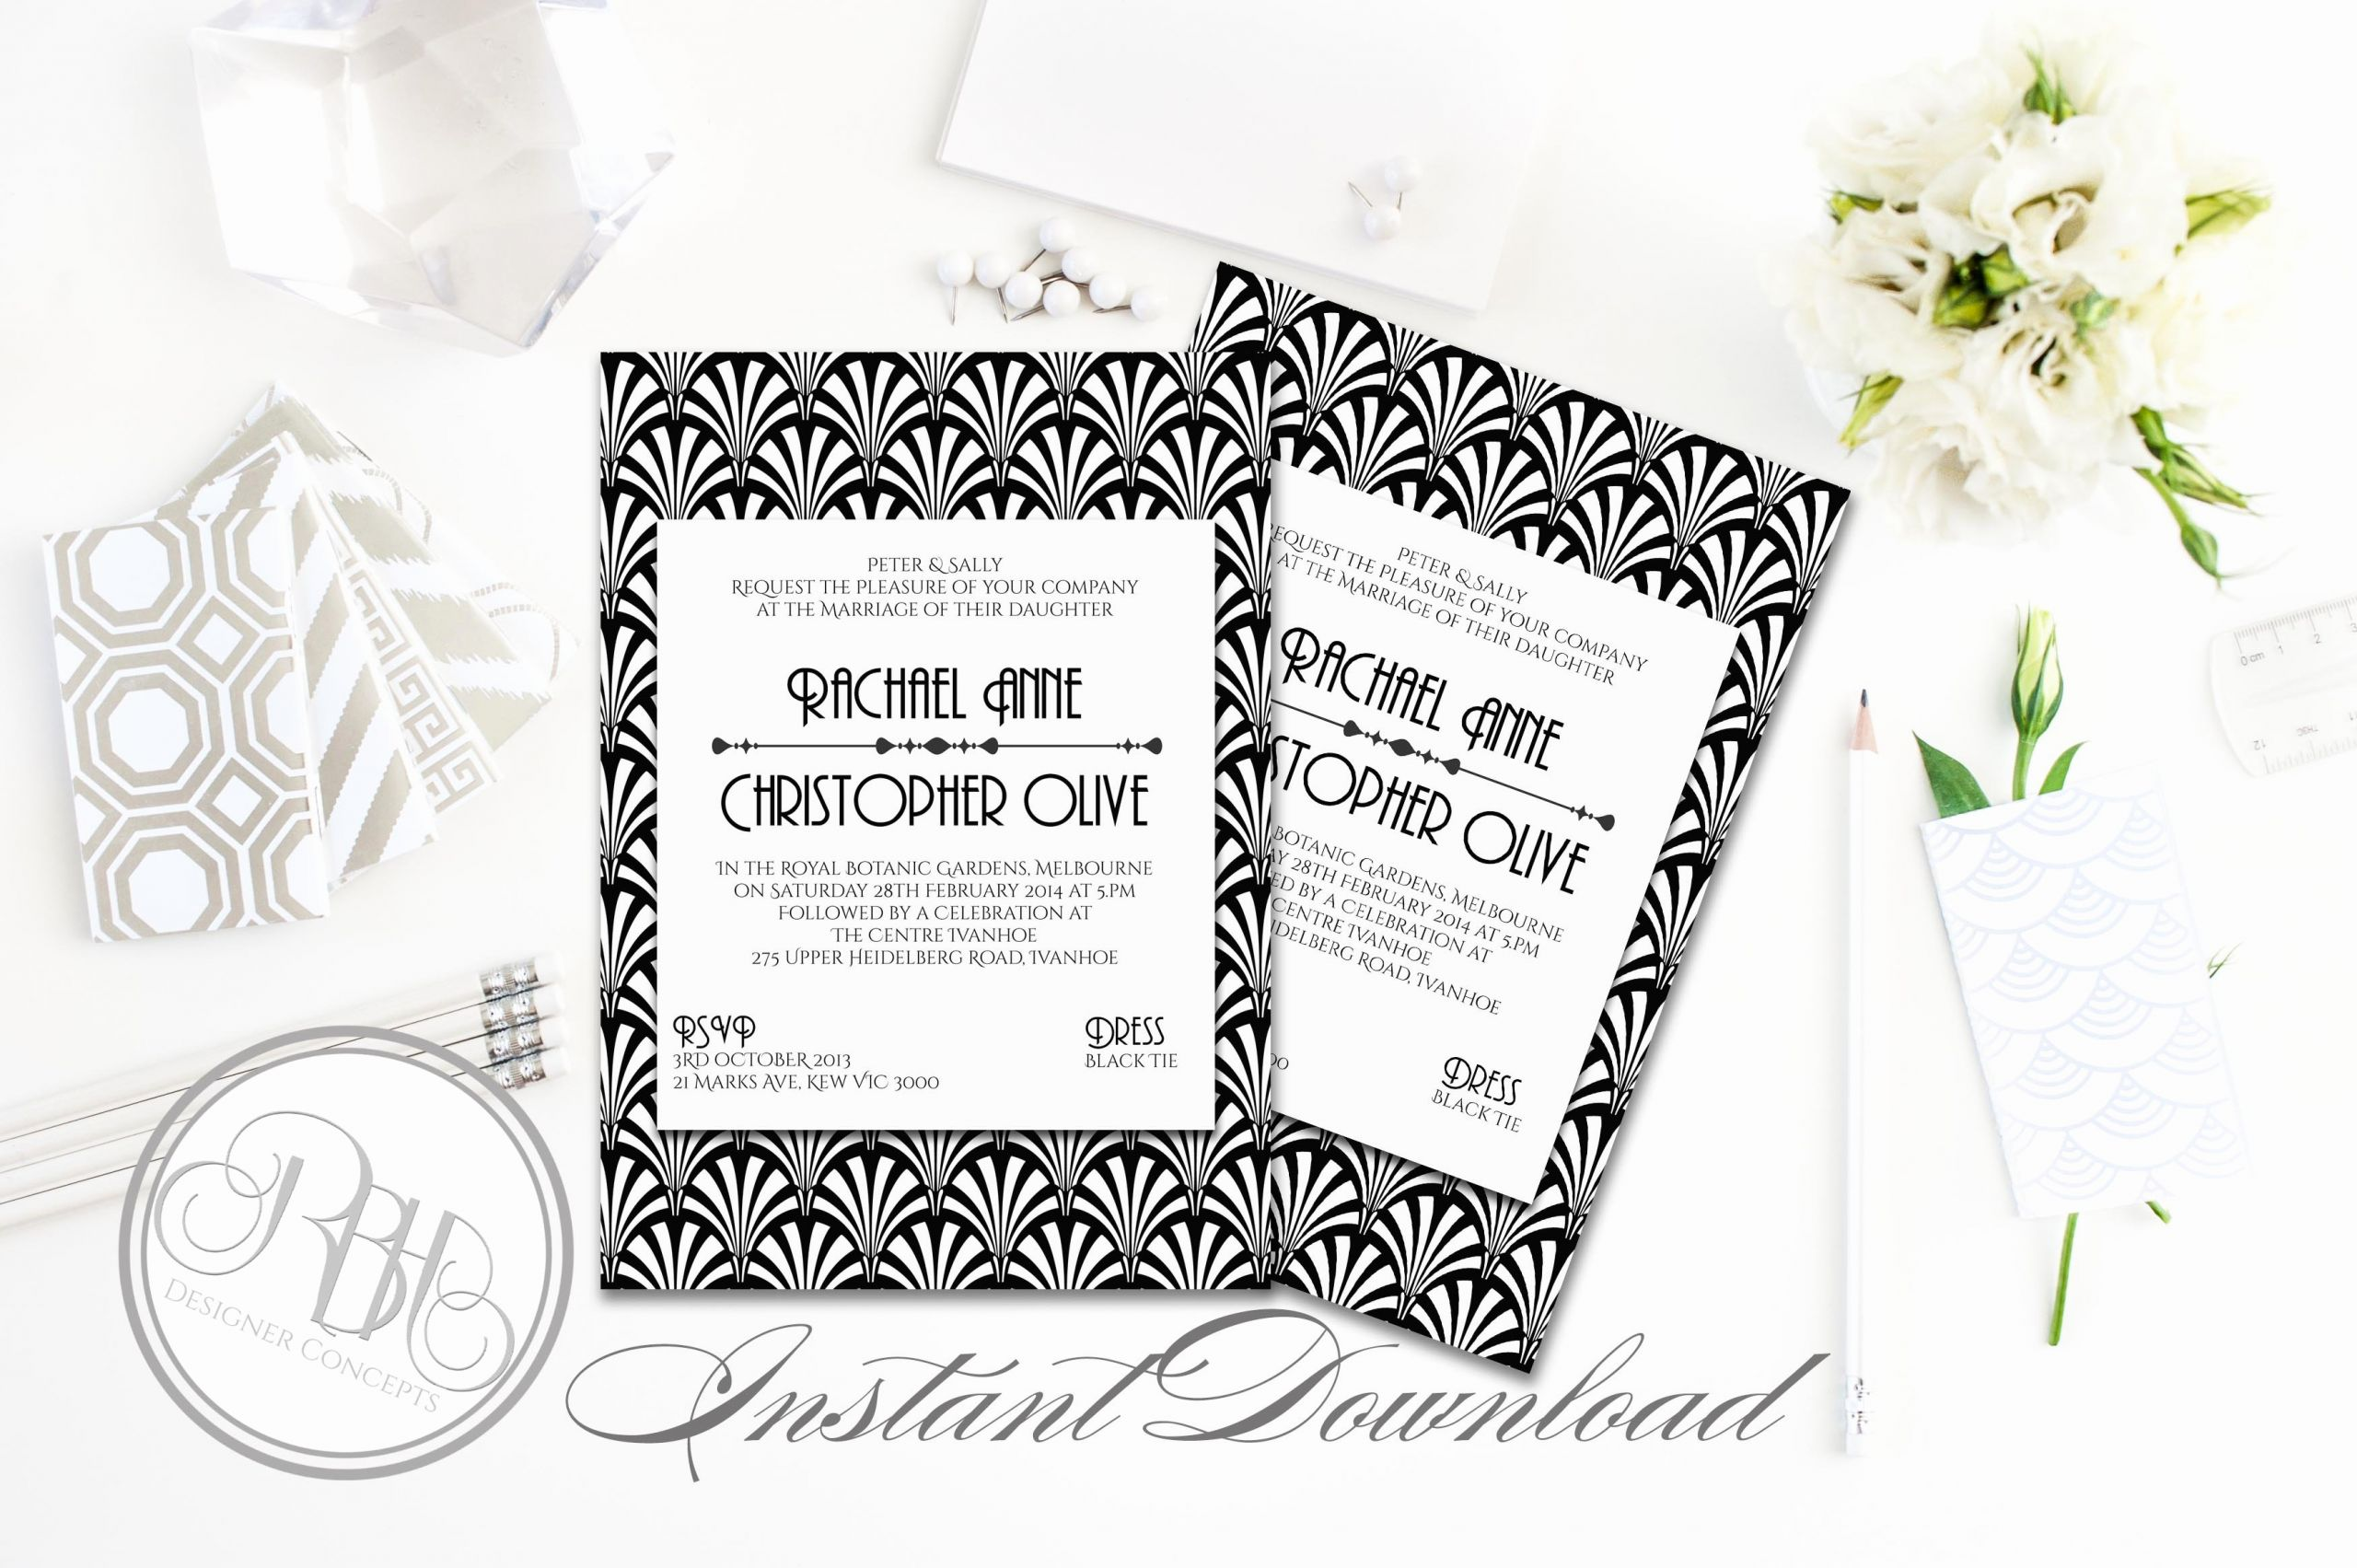 Art Deco Invitation Template Luxury Art Deco Wedding Invitation Sienna Wedding Templates